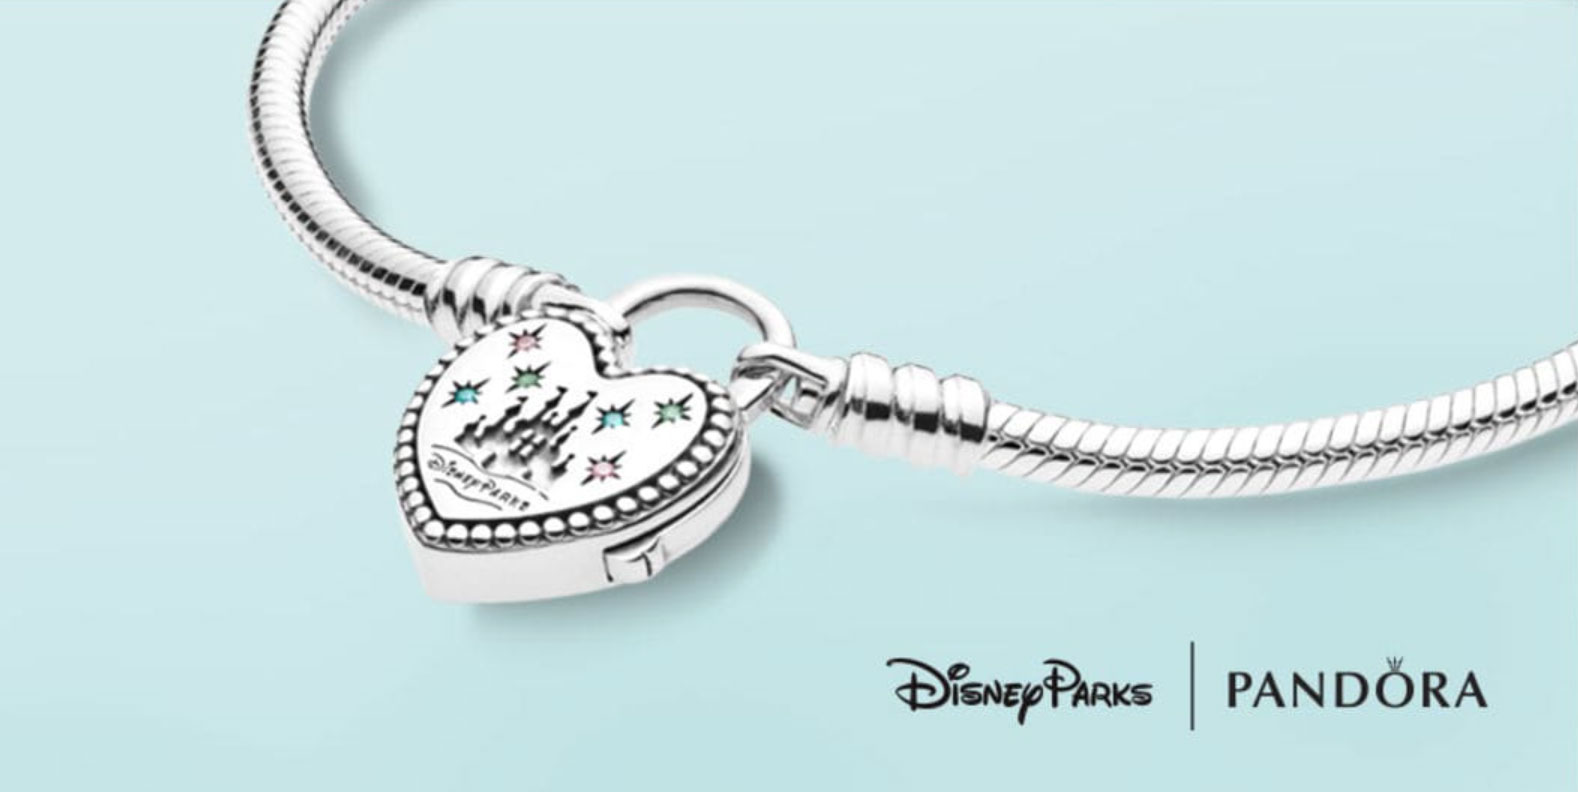 disneyland paris pandora charms 2020